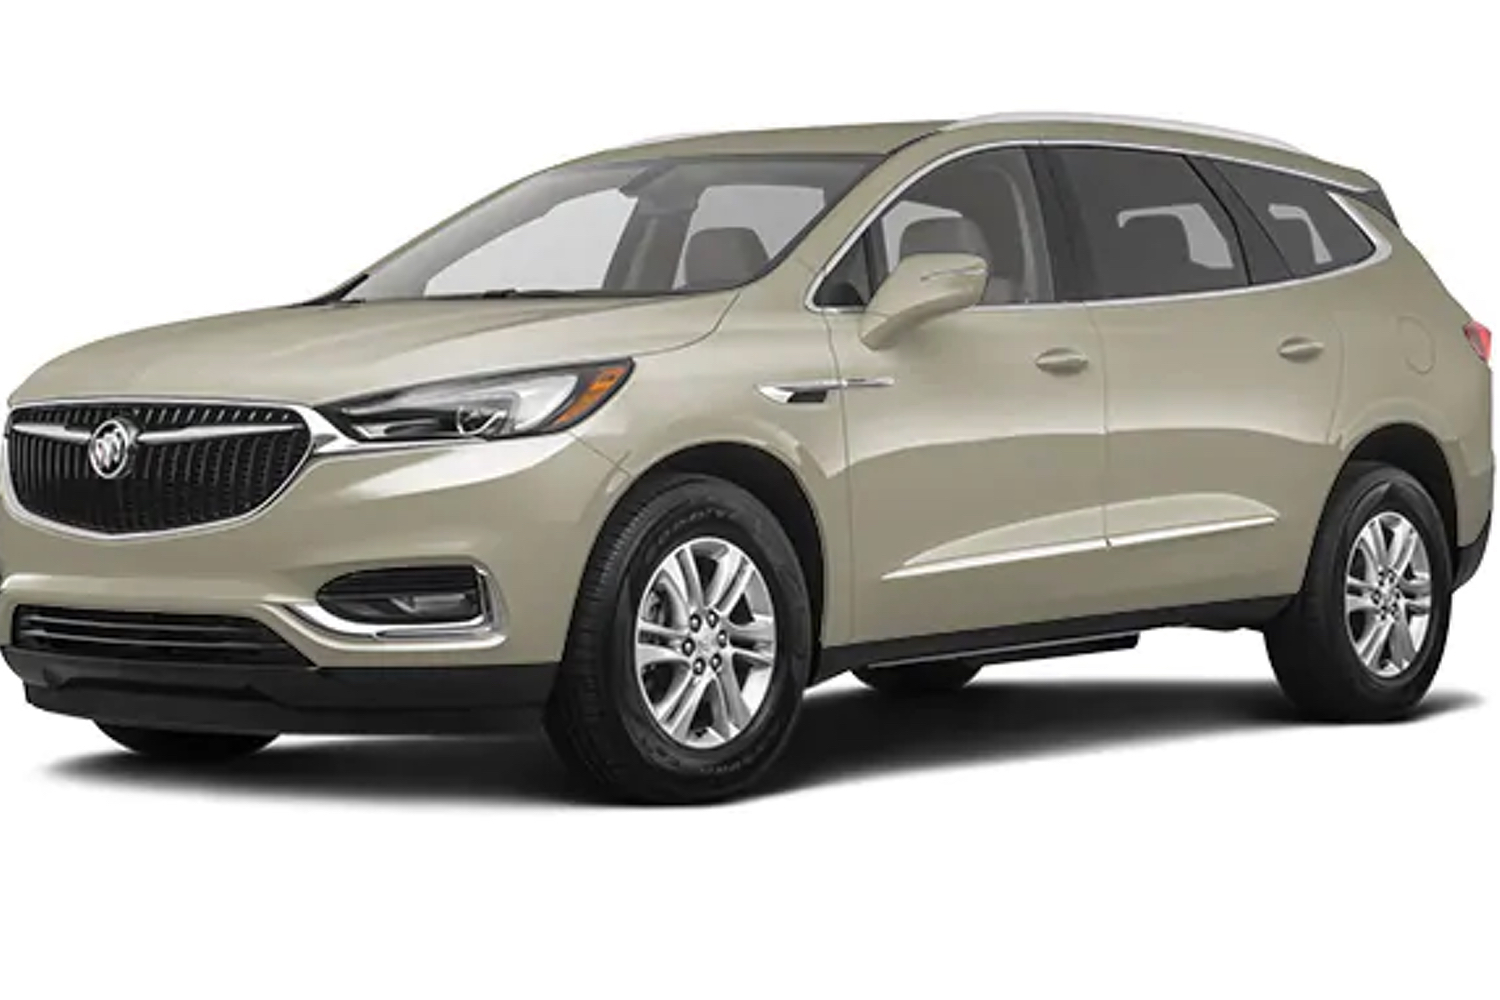 2020 Buick Enclave Exterior Colors | Gm Authority New 2021 Buick Enclave Discounts, Discontinued, Exterior Colors